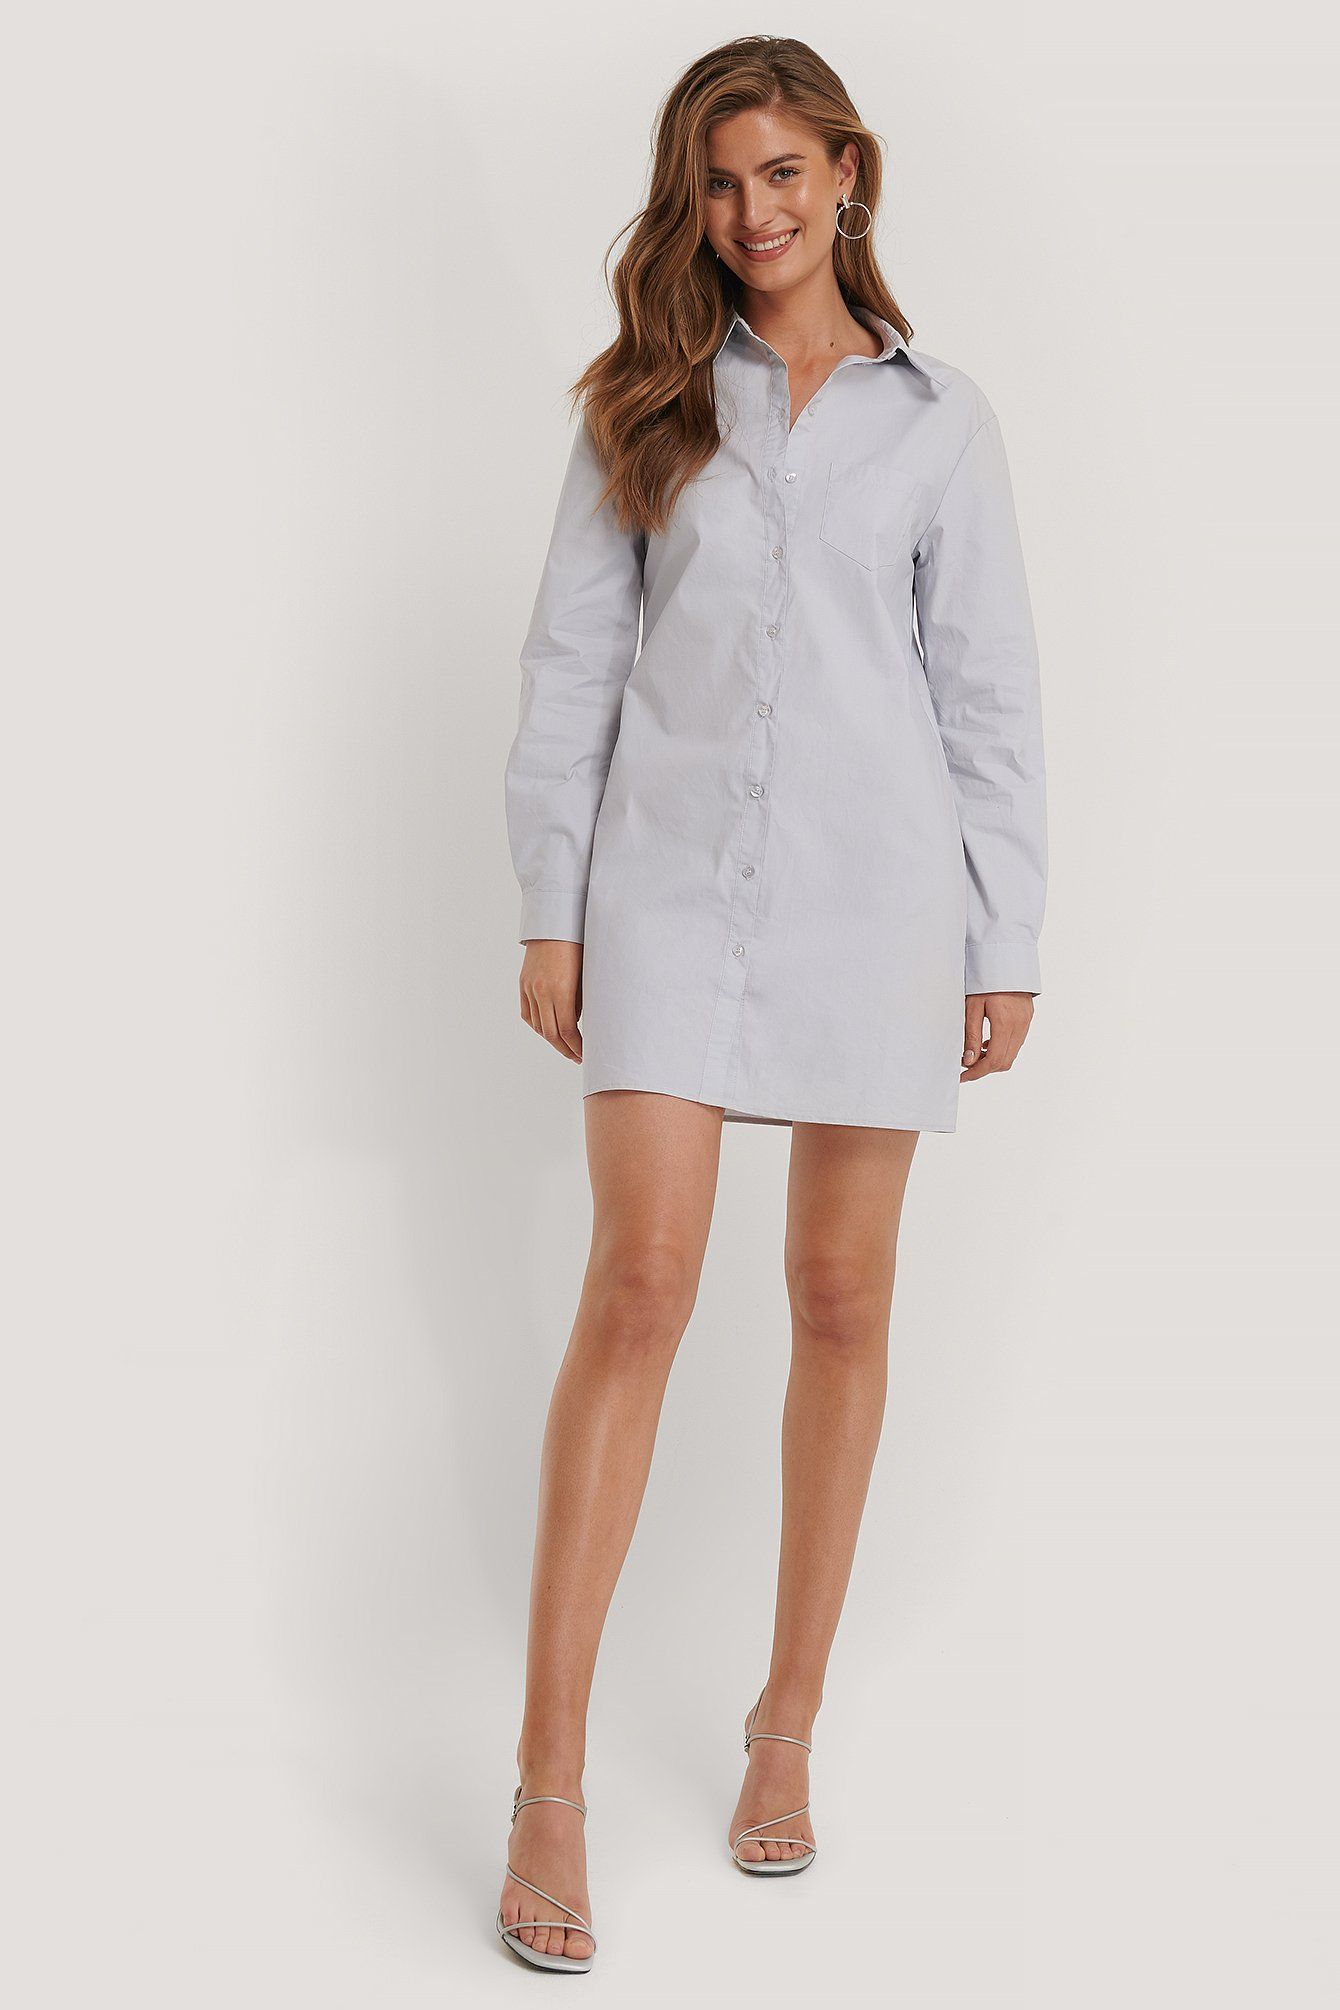 Kim Feenstra x NA-KD Chest Pocket Shirt Dress - Blue